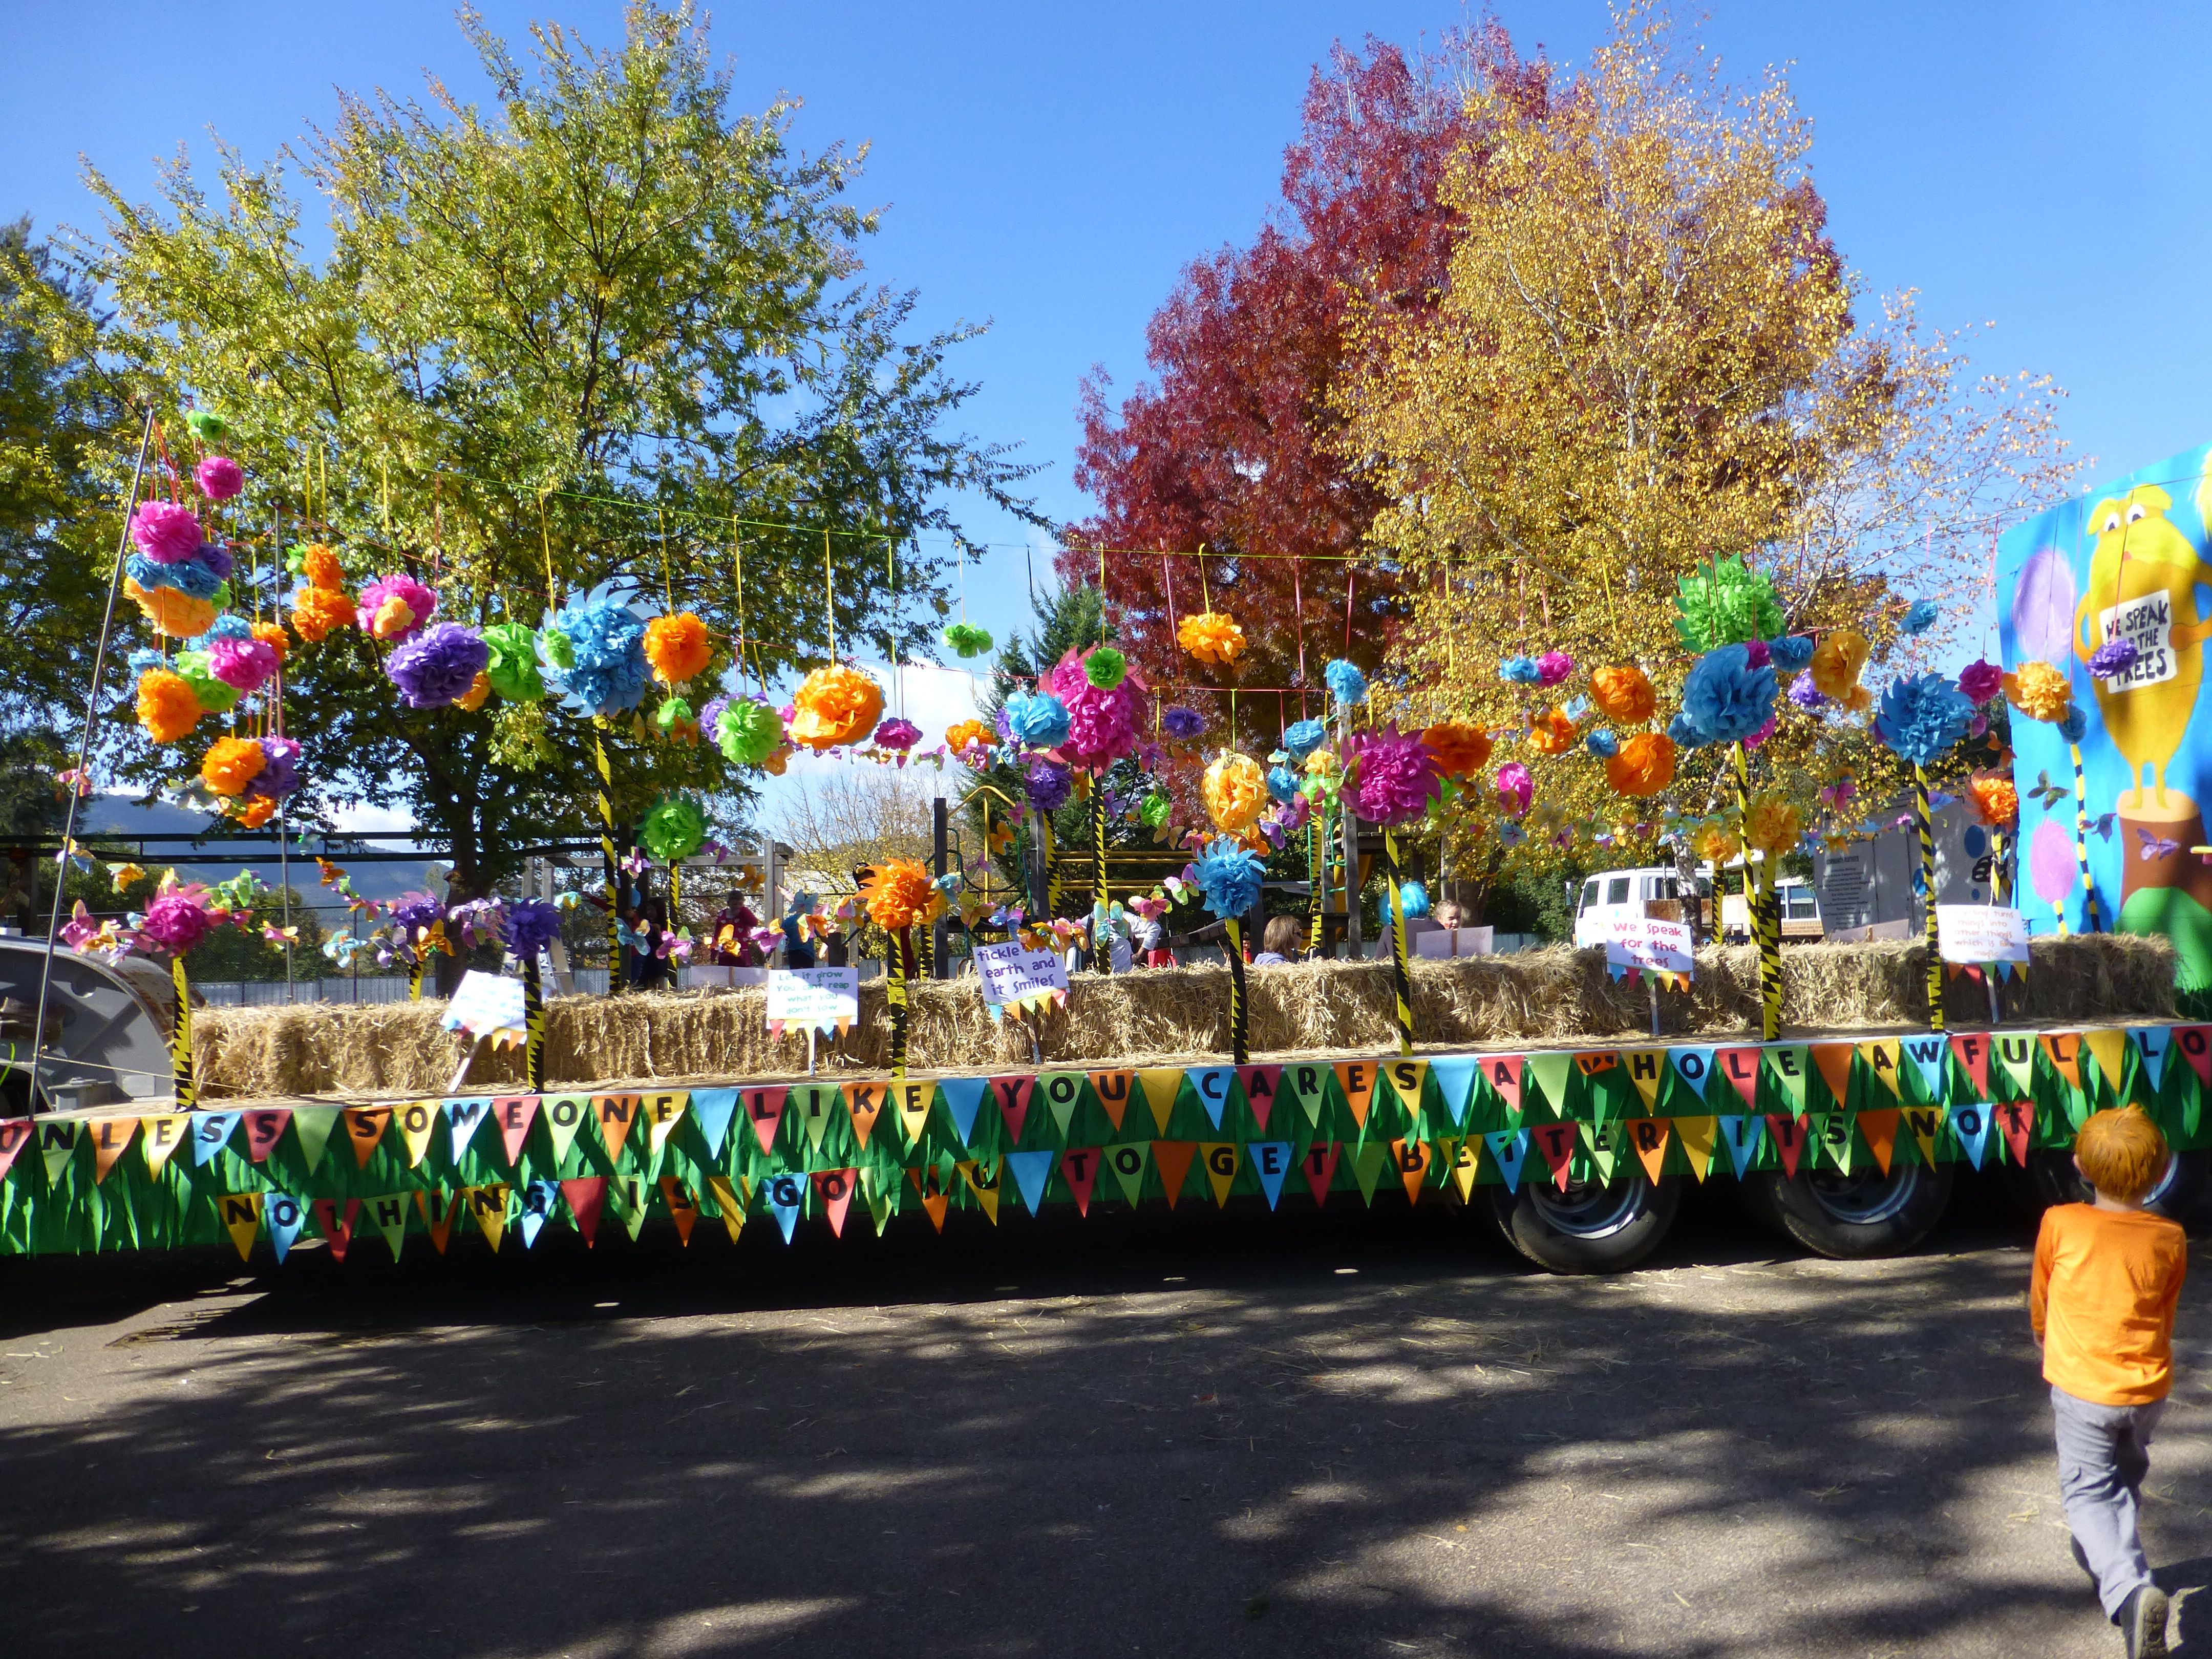 Christmas parade ideas - I Really Like The Floating Puffs Of Color On This Float